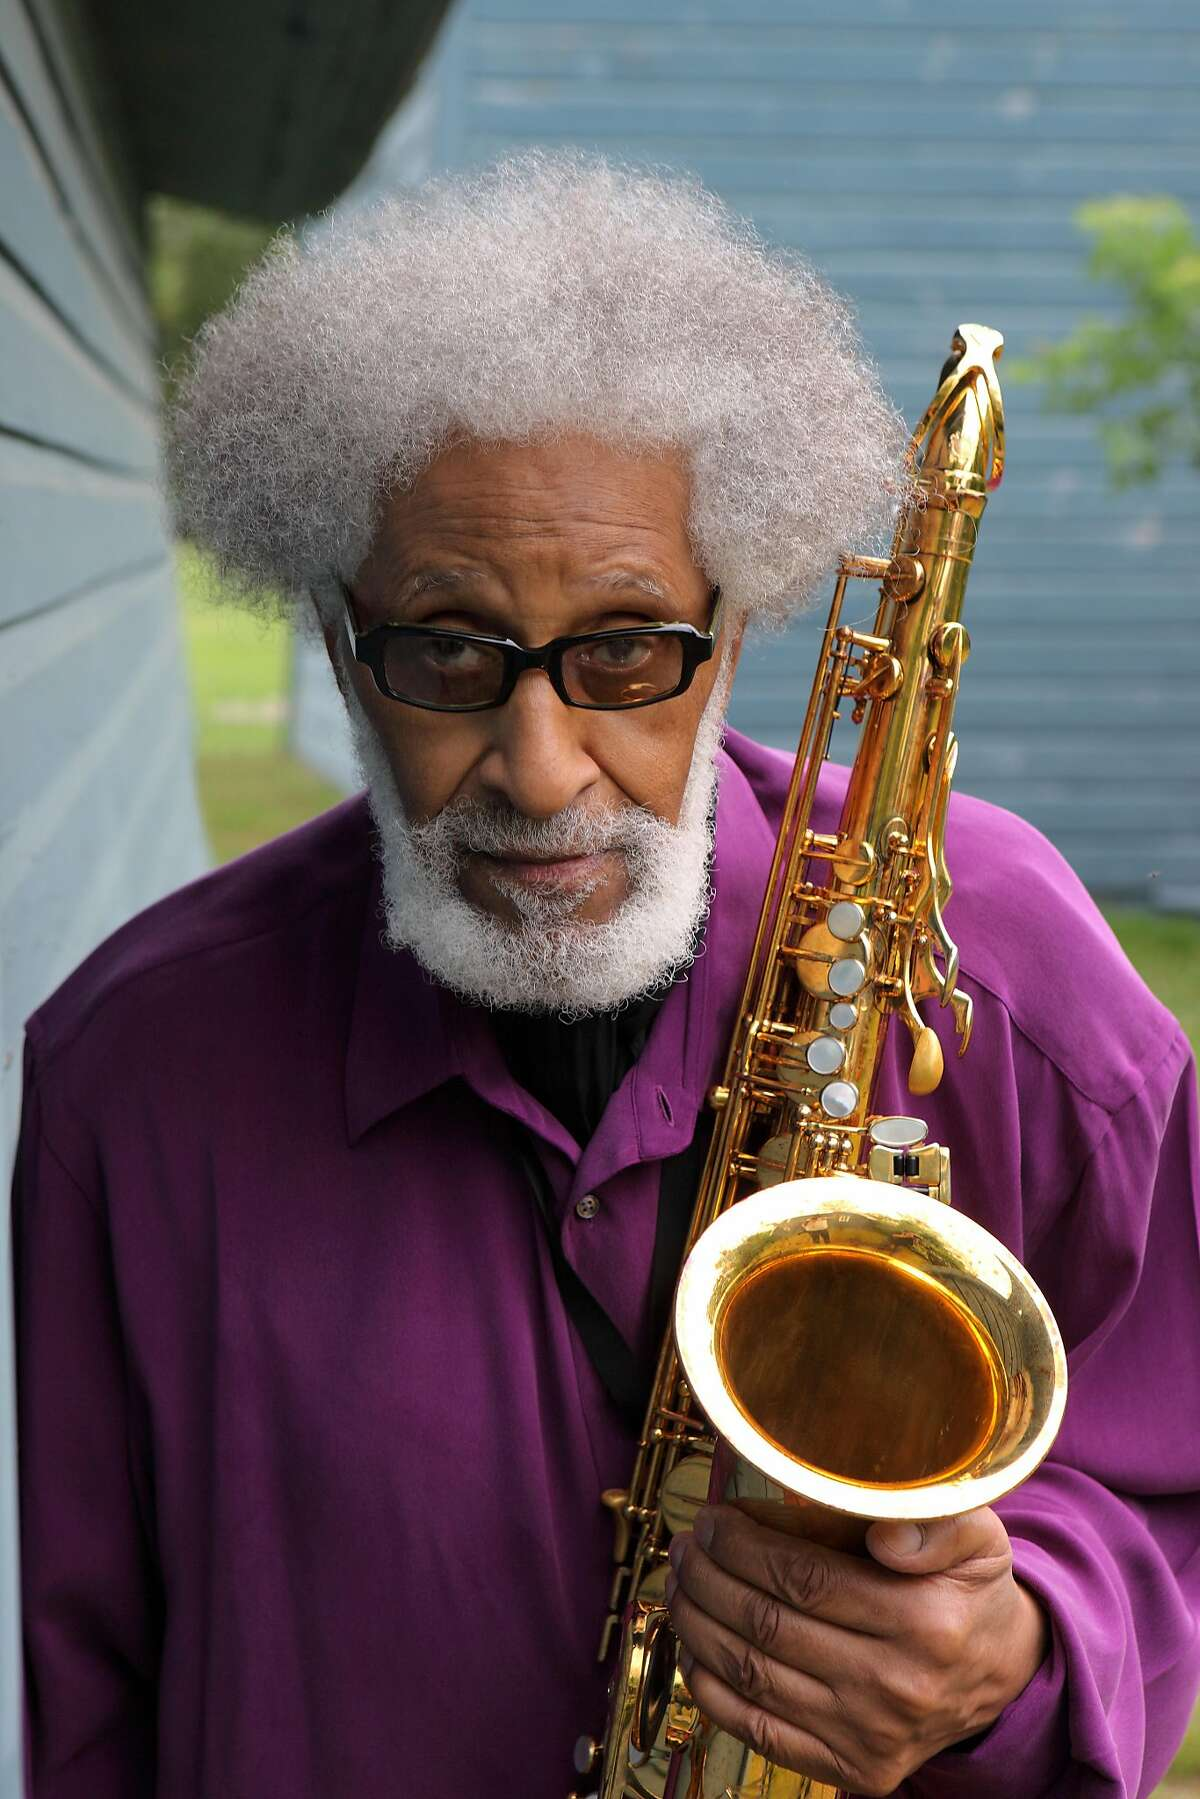 The towering tenor saxophonist and composer Sonny��Rollins will be honored with a musical tribute at the 60th annual Monterey Jazz Festival by an all-star band featuring saxophonists Jimmy Heath, Joe Lovano, Branford Marsalis and Joshua Redman.